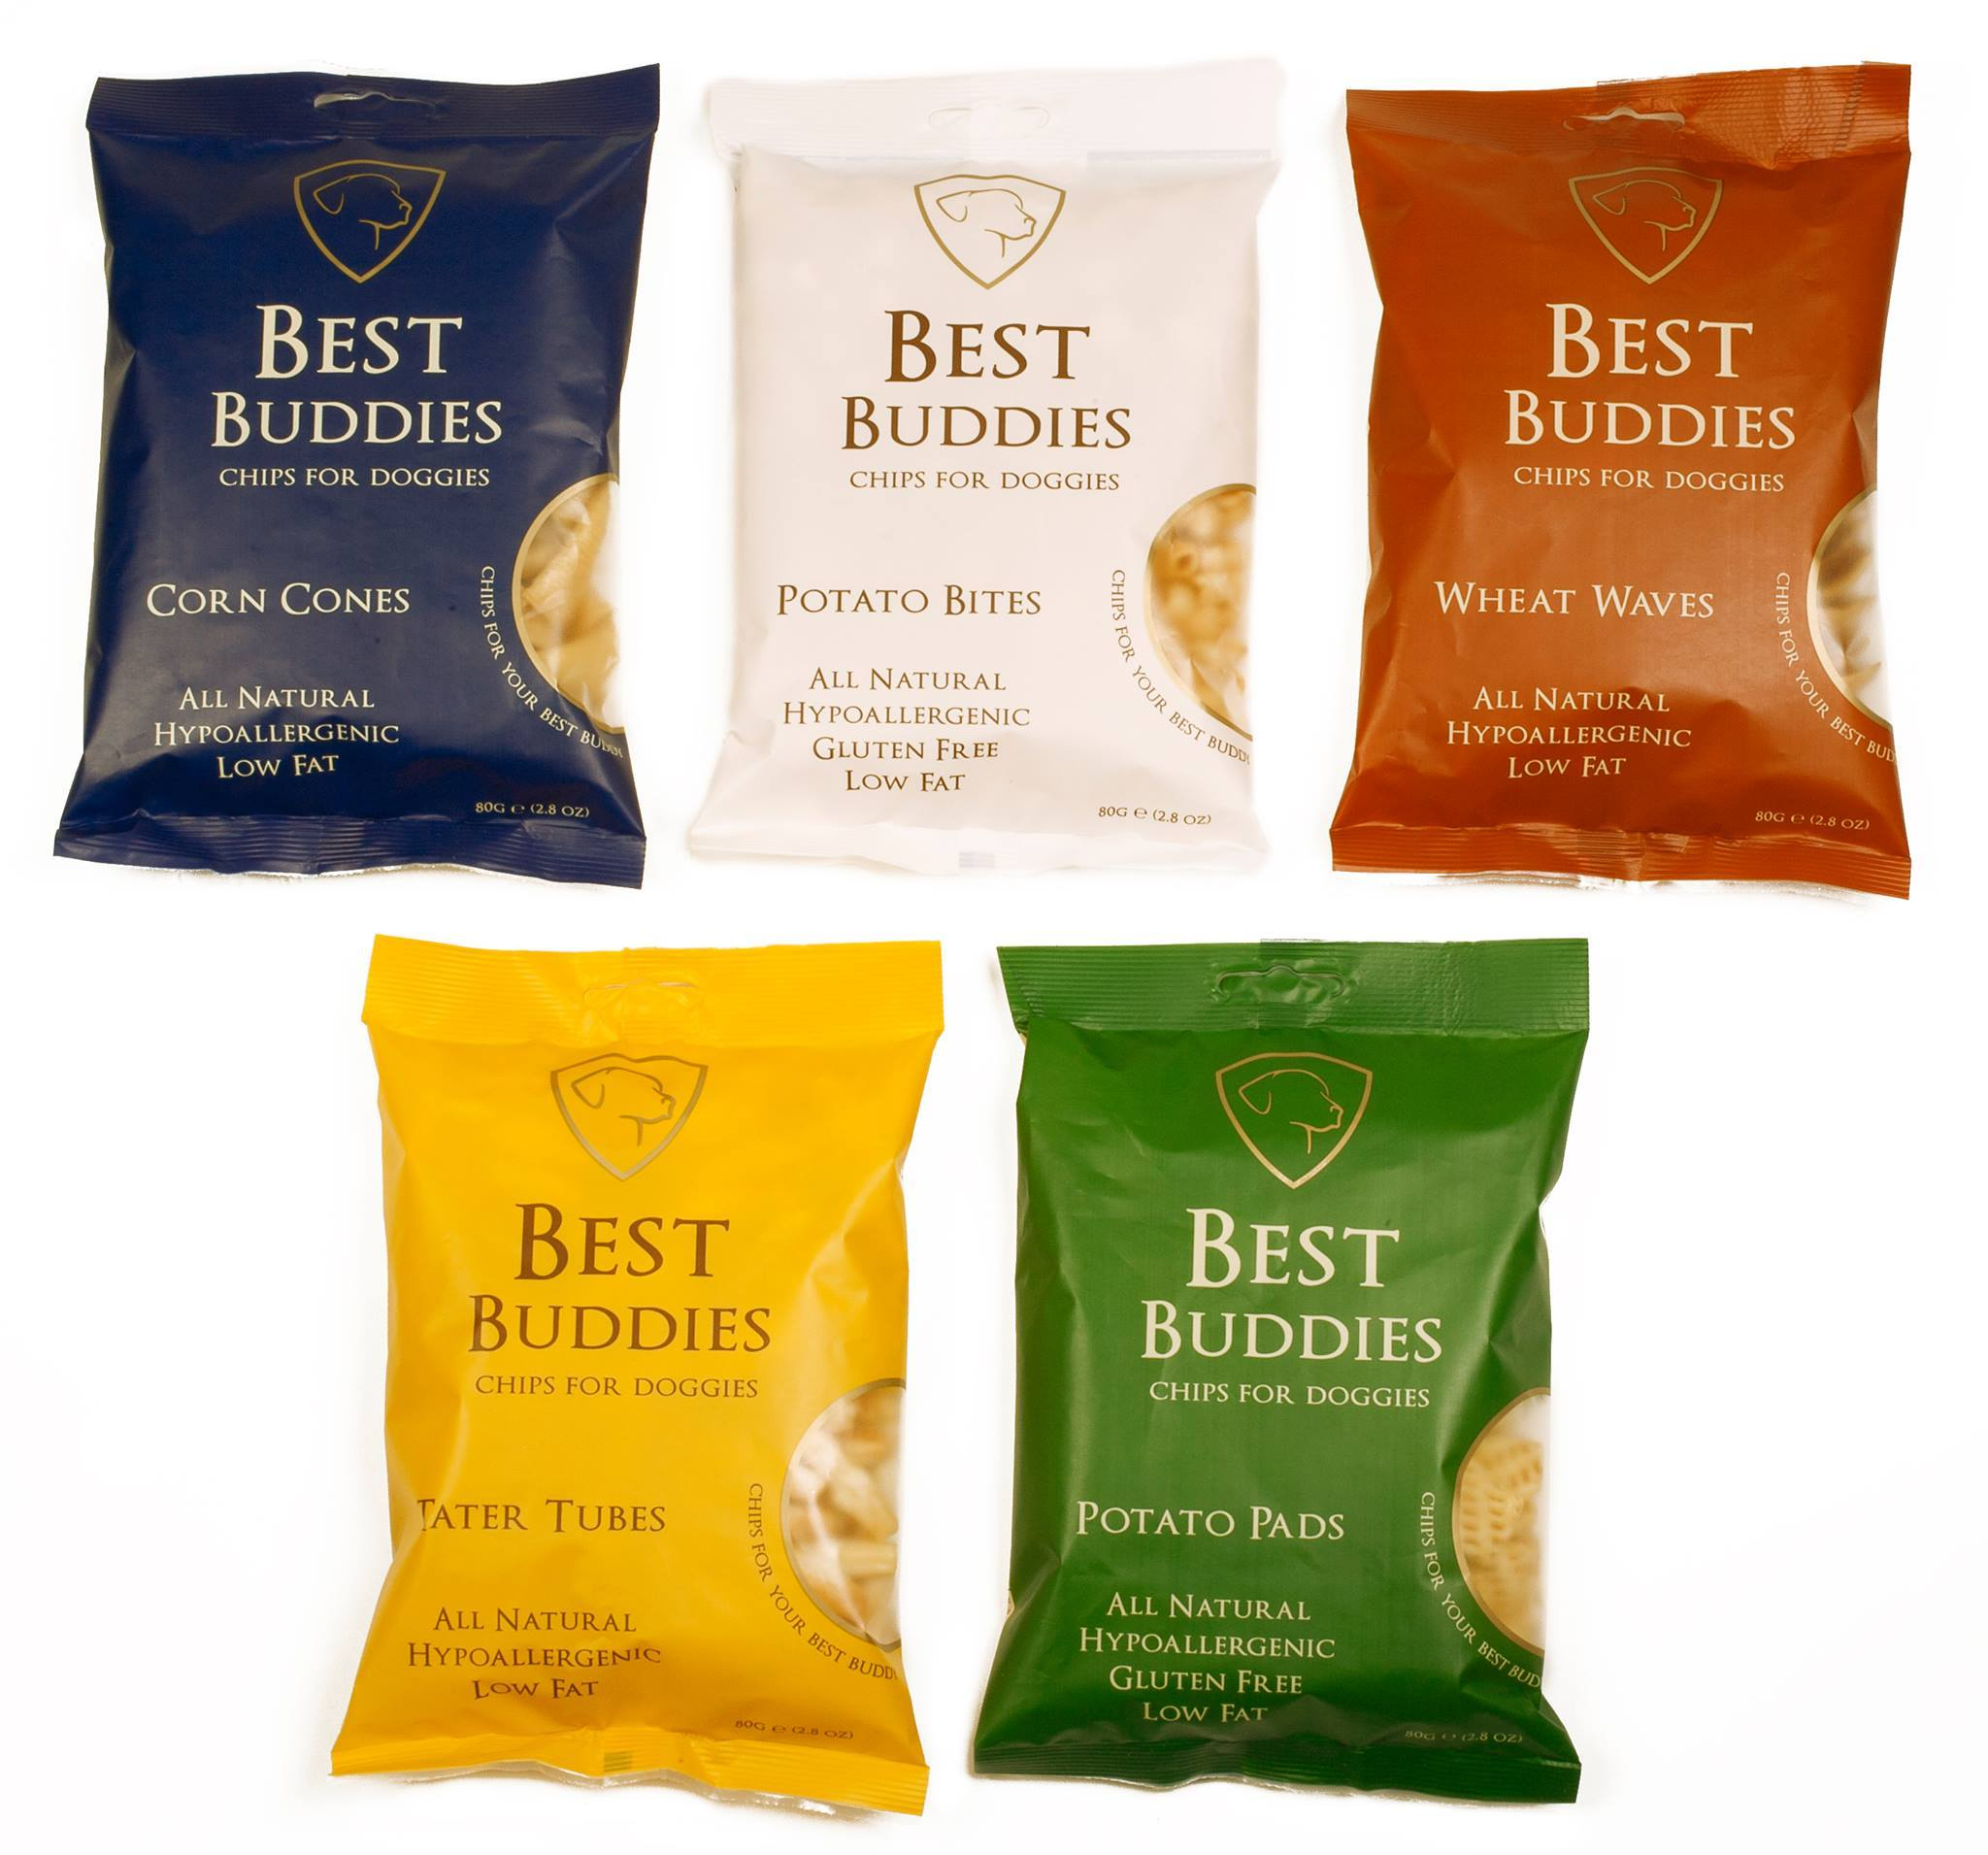 Best Buddies Chips for doggies: 100% natural ingredients without any preservatives.